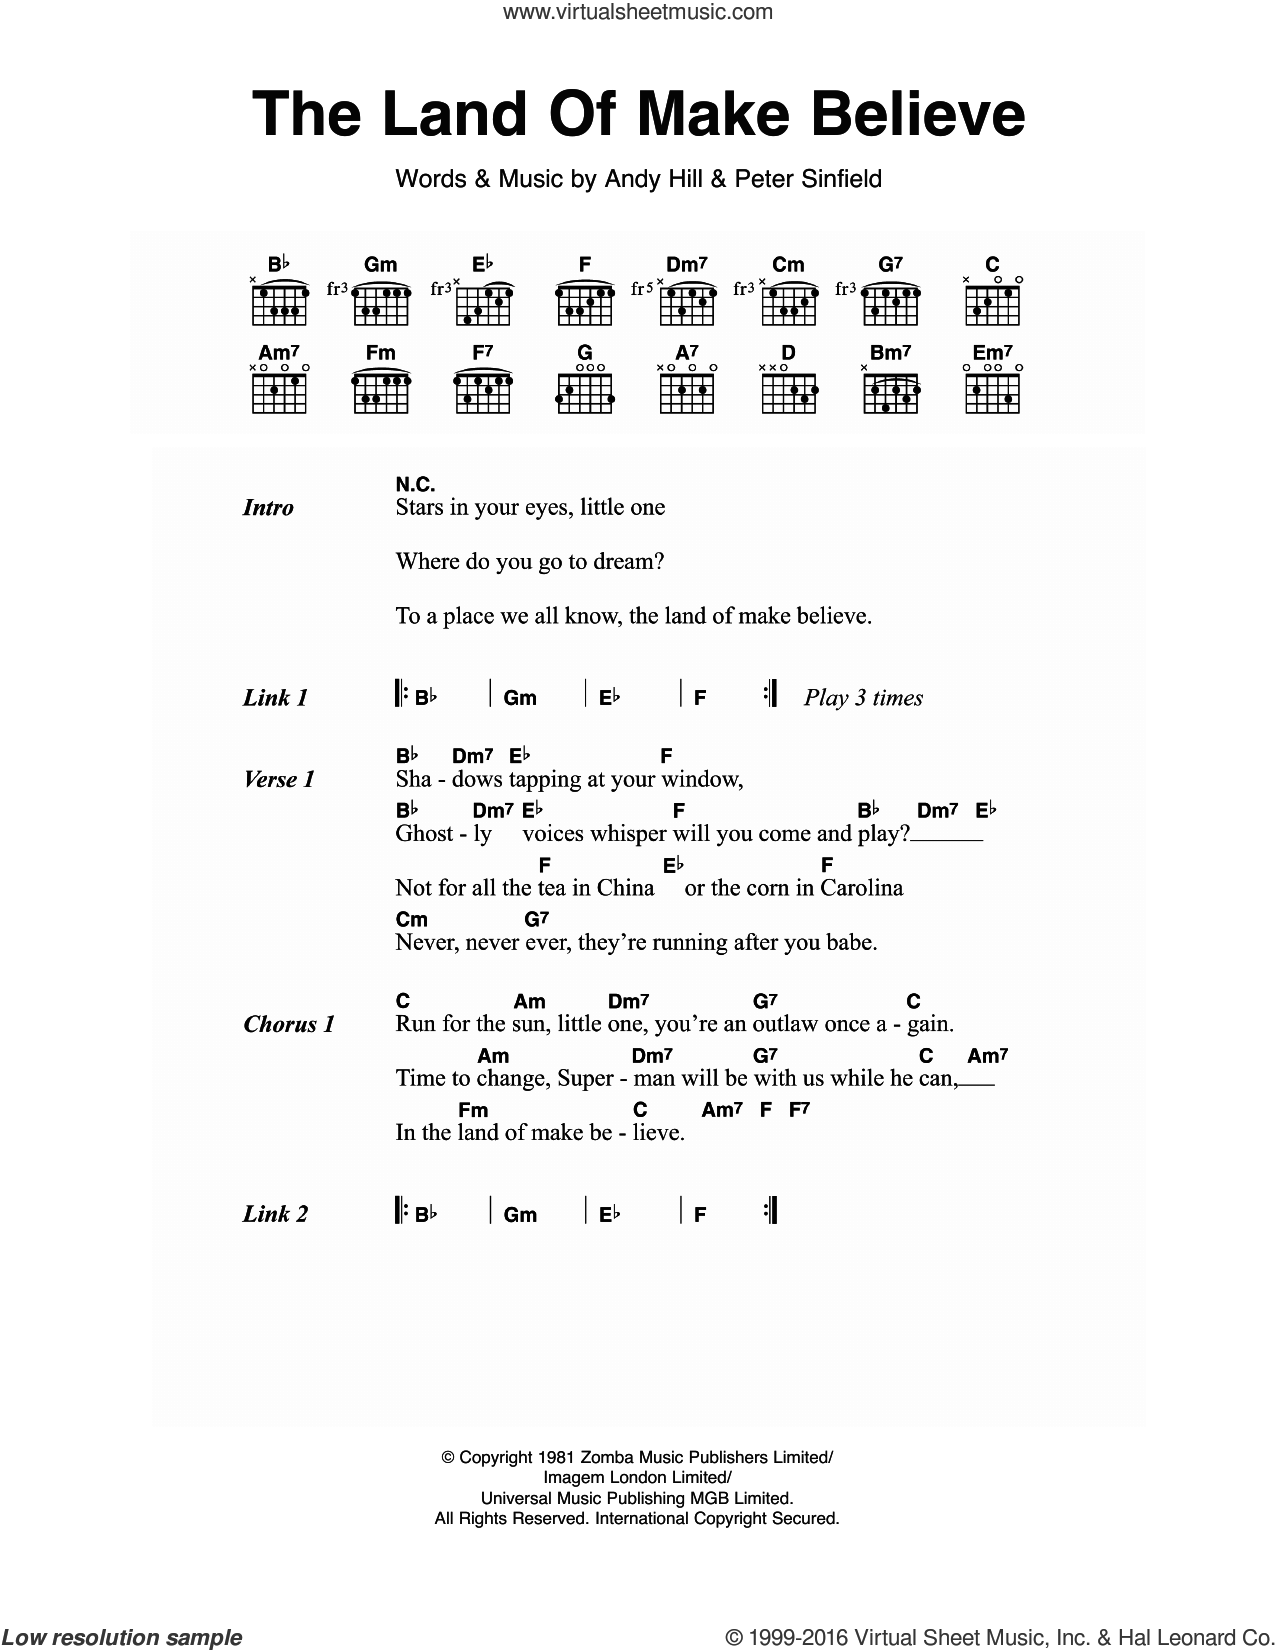 The Land Of Make Believe sheet music for guitar (chords) by Bucks Fizz. Score Image Preview.